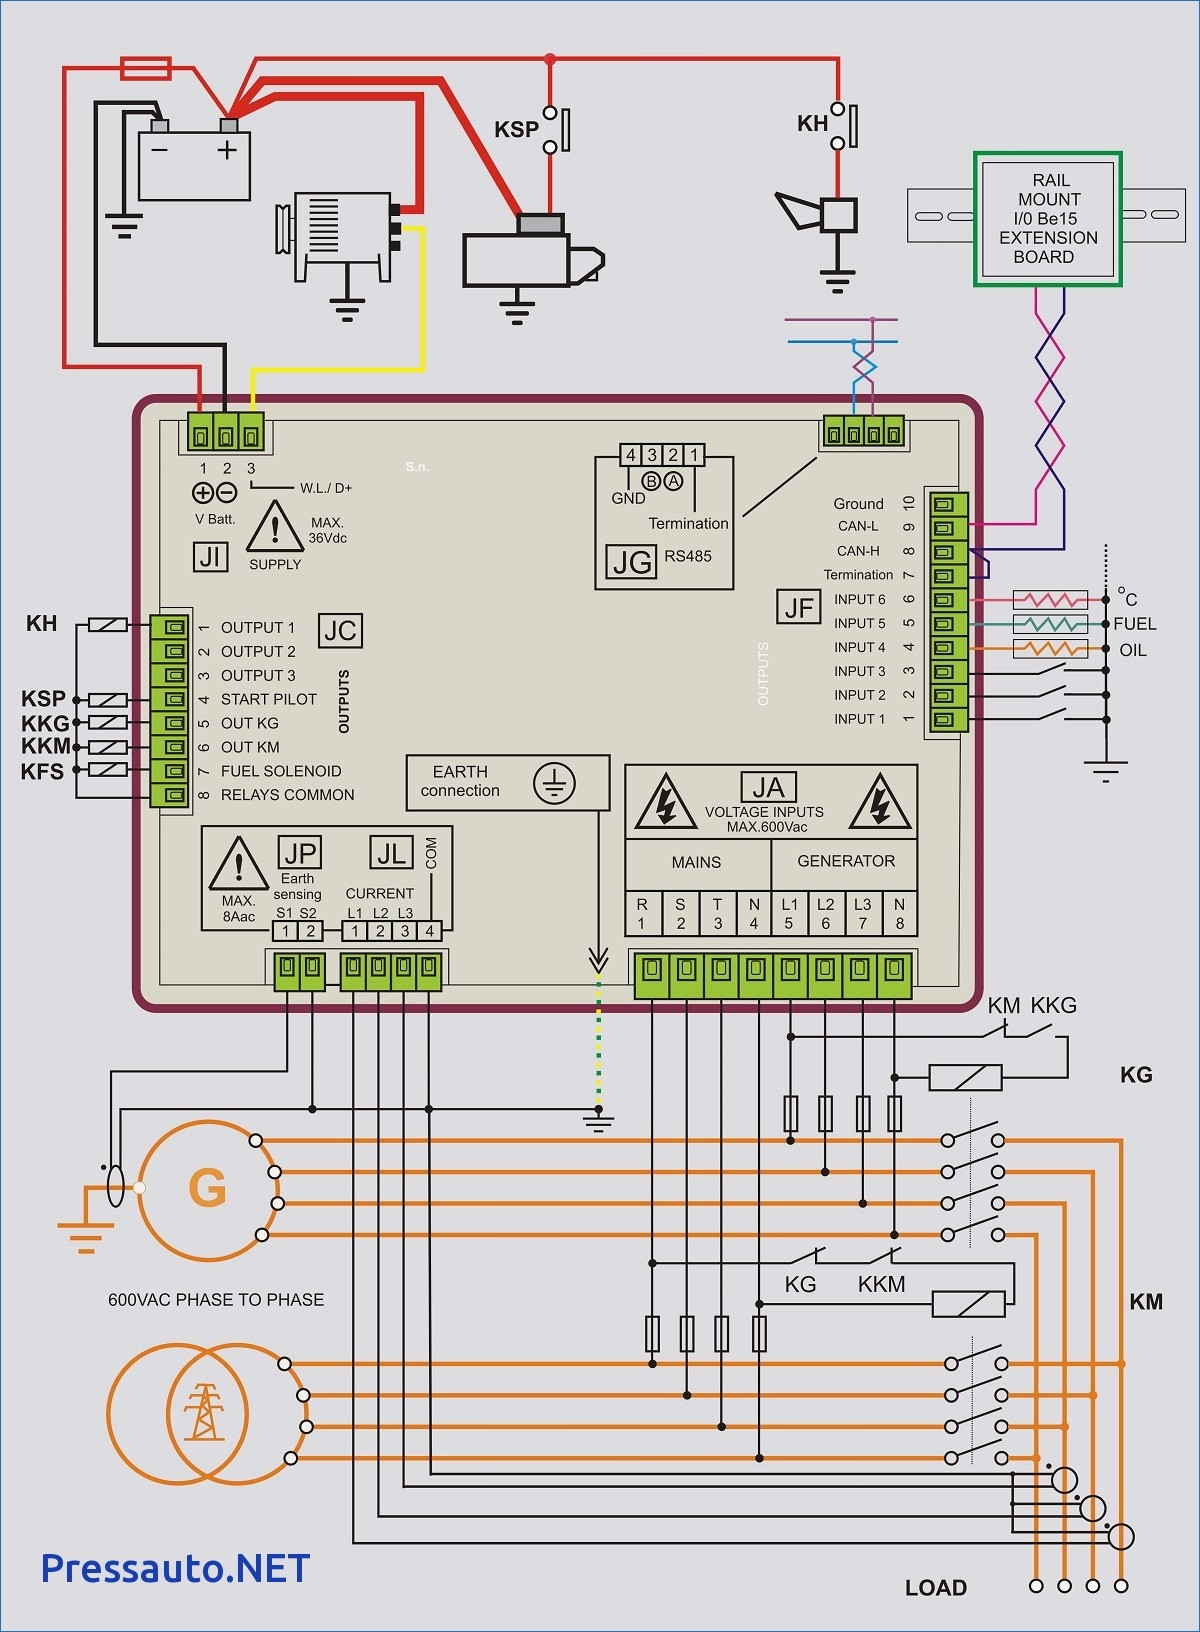 Transfer Switch Wiring Diagram Automatic Transfer Switch Wiring Diagram Free Autoctono Of Transfer Switch Wiring Diagram